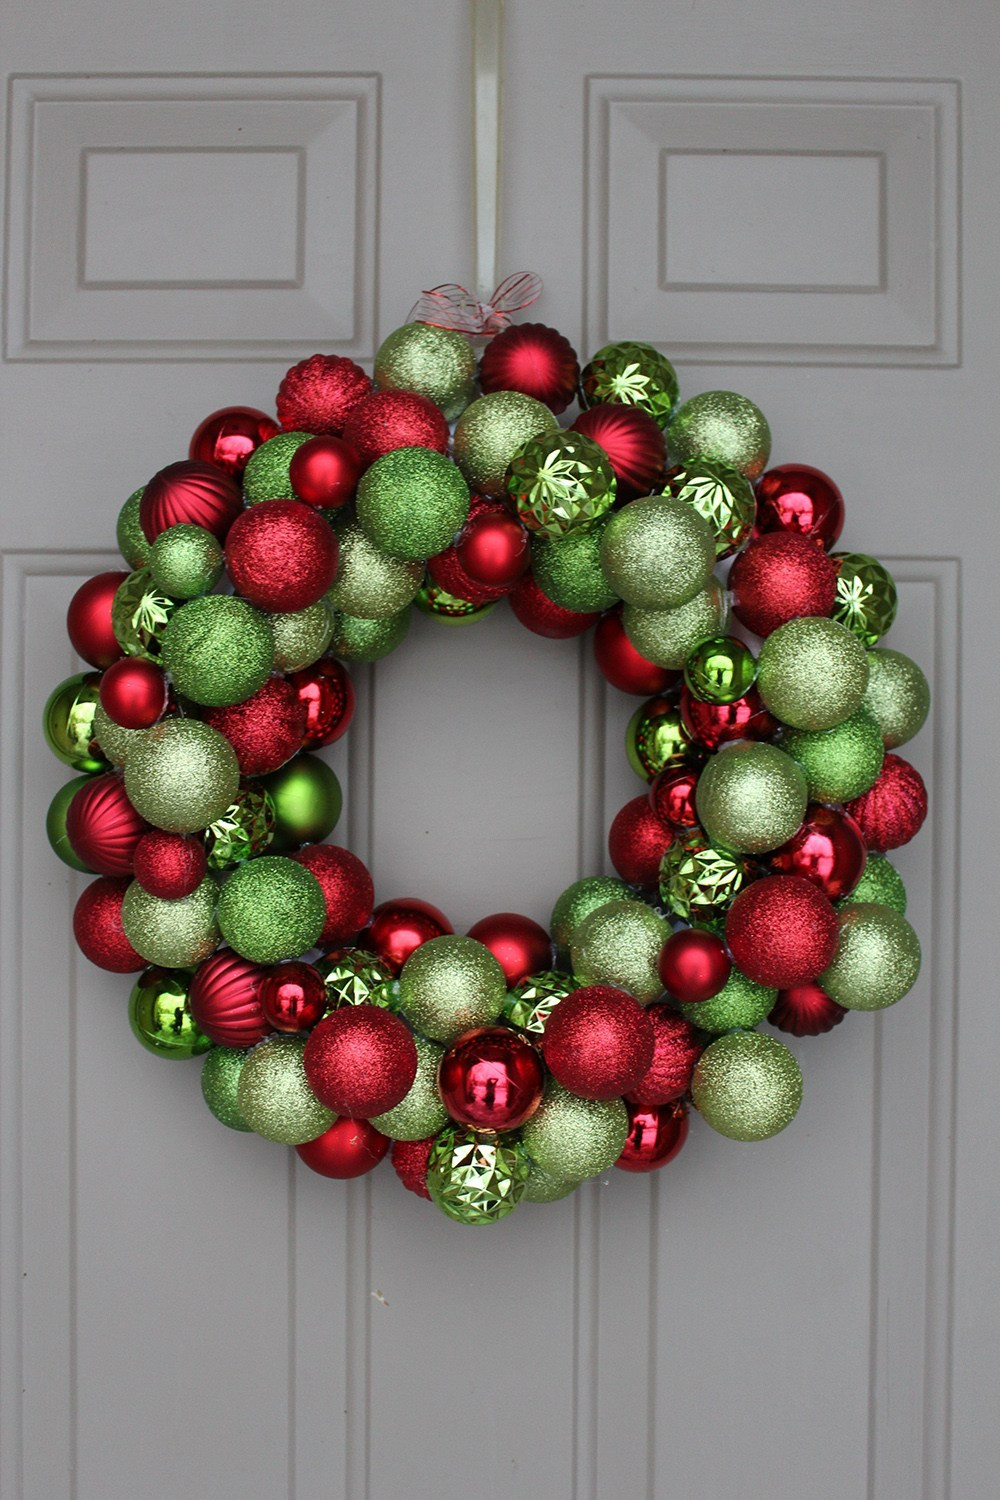 Best ideas about DIY Ornament Wreath . Save or Pin DIY Ornament Wreath under $30 Now.